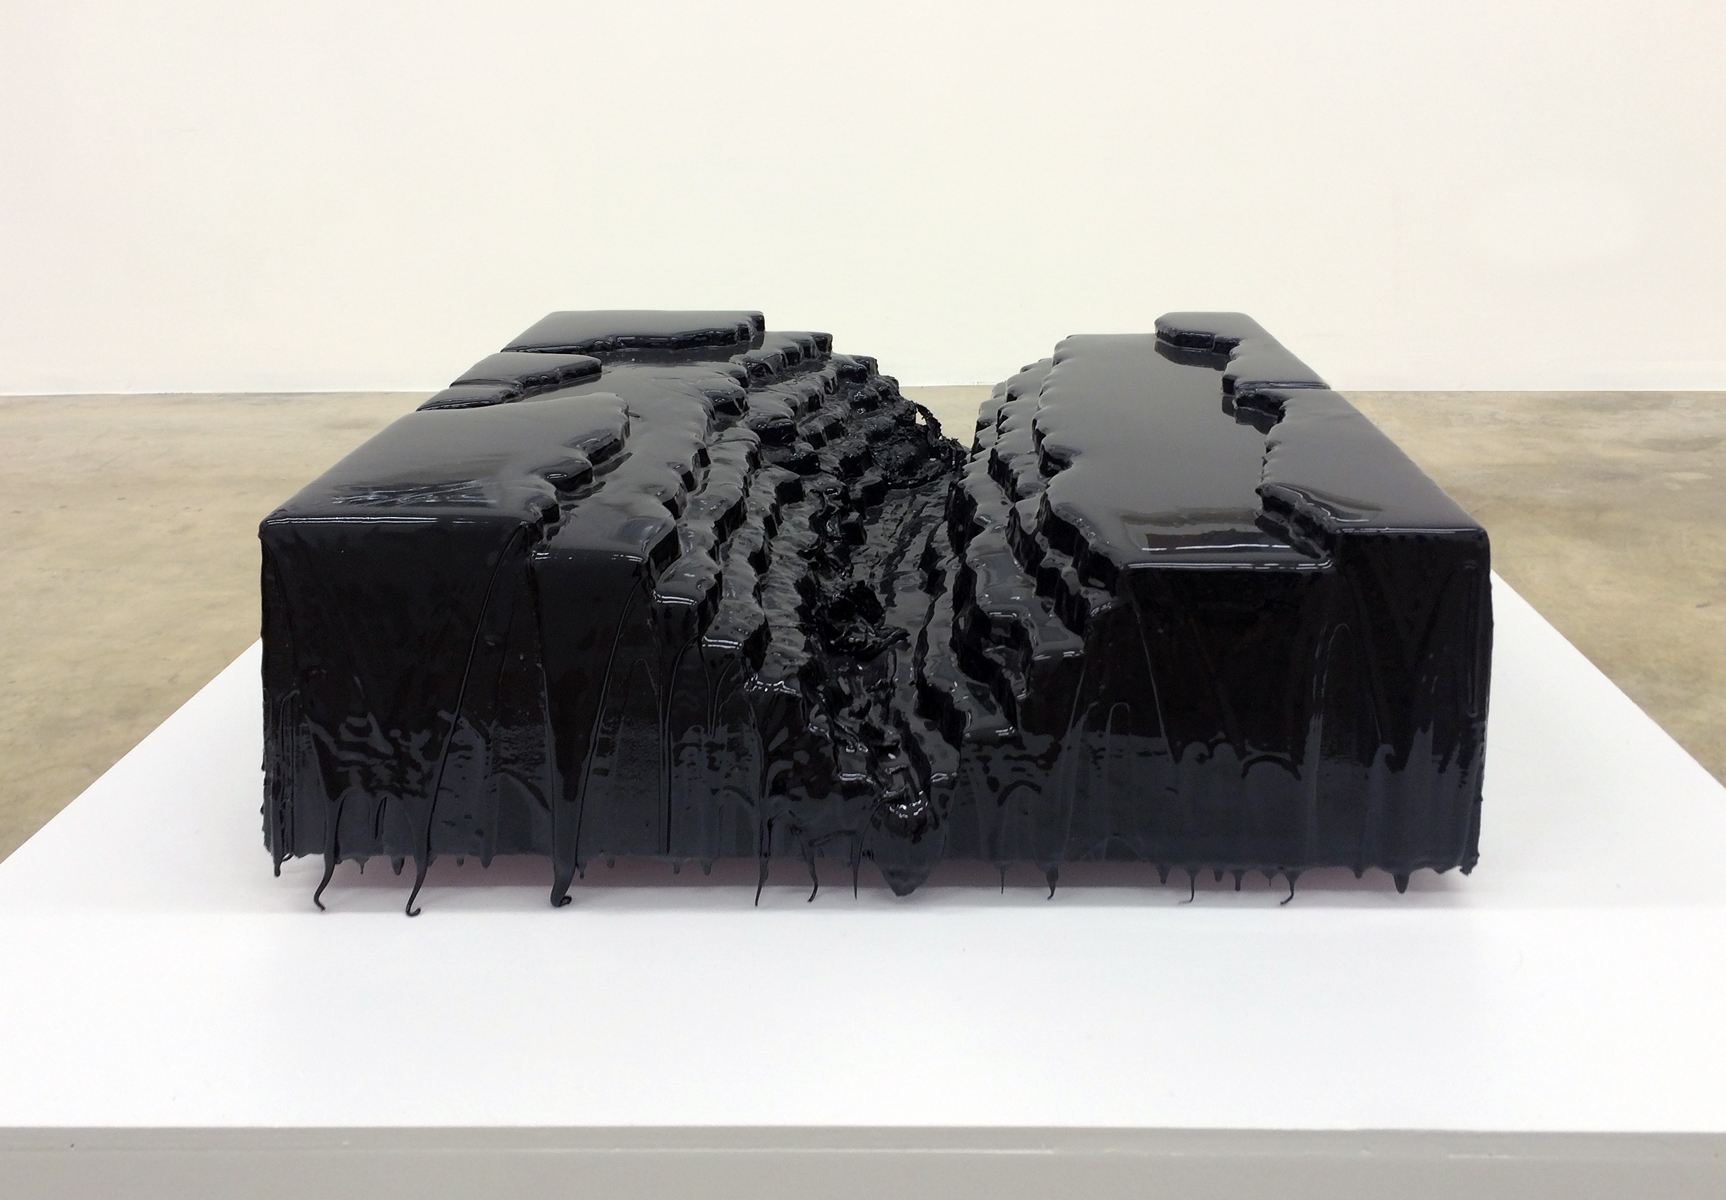 Rio Grande Gorge , 2014 Resin, Latex, Polystyrene 24 x 24 x 12 inches